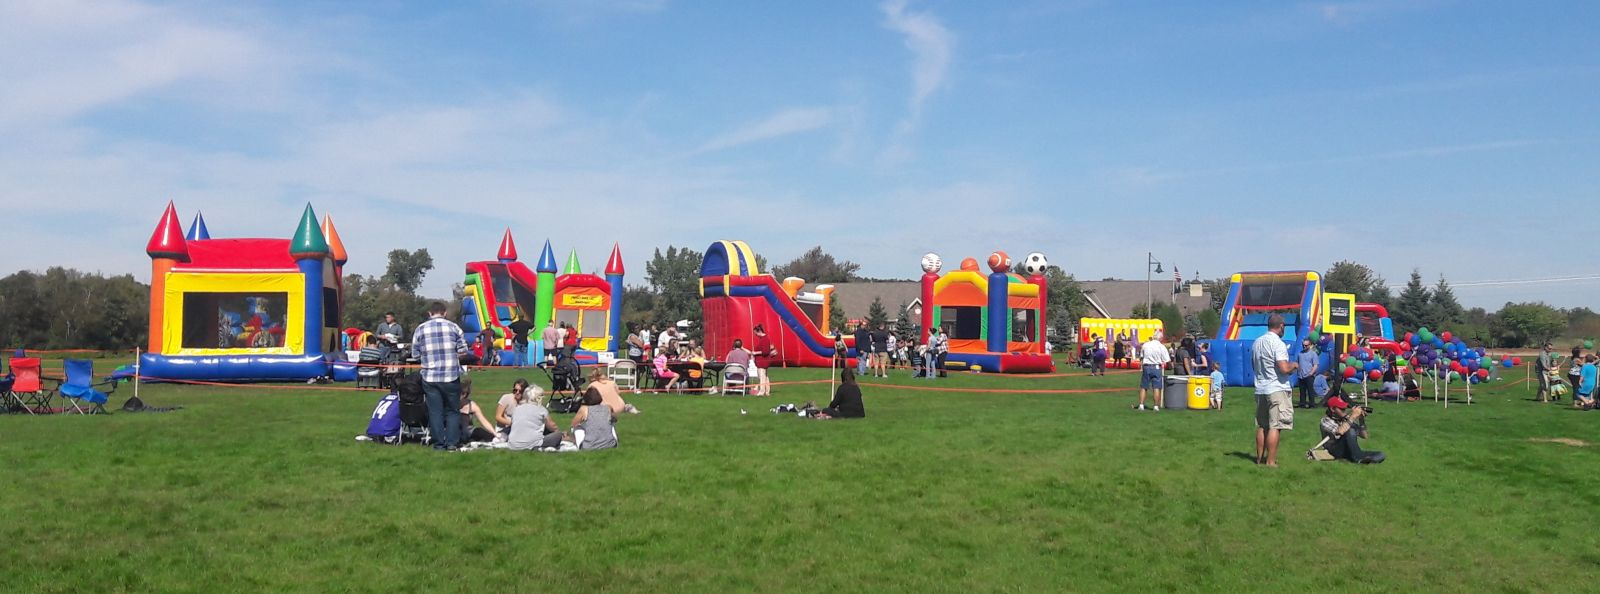 Giant inflatable slide, bounce house, combo, and other inflatables at a church field event.